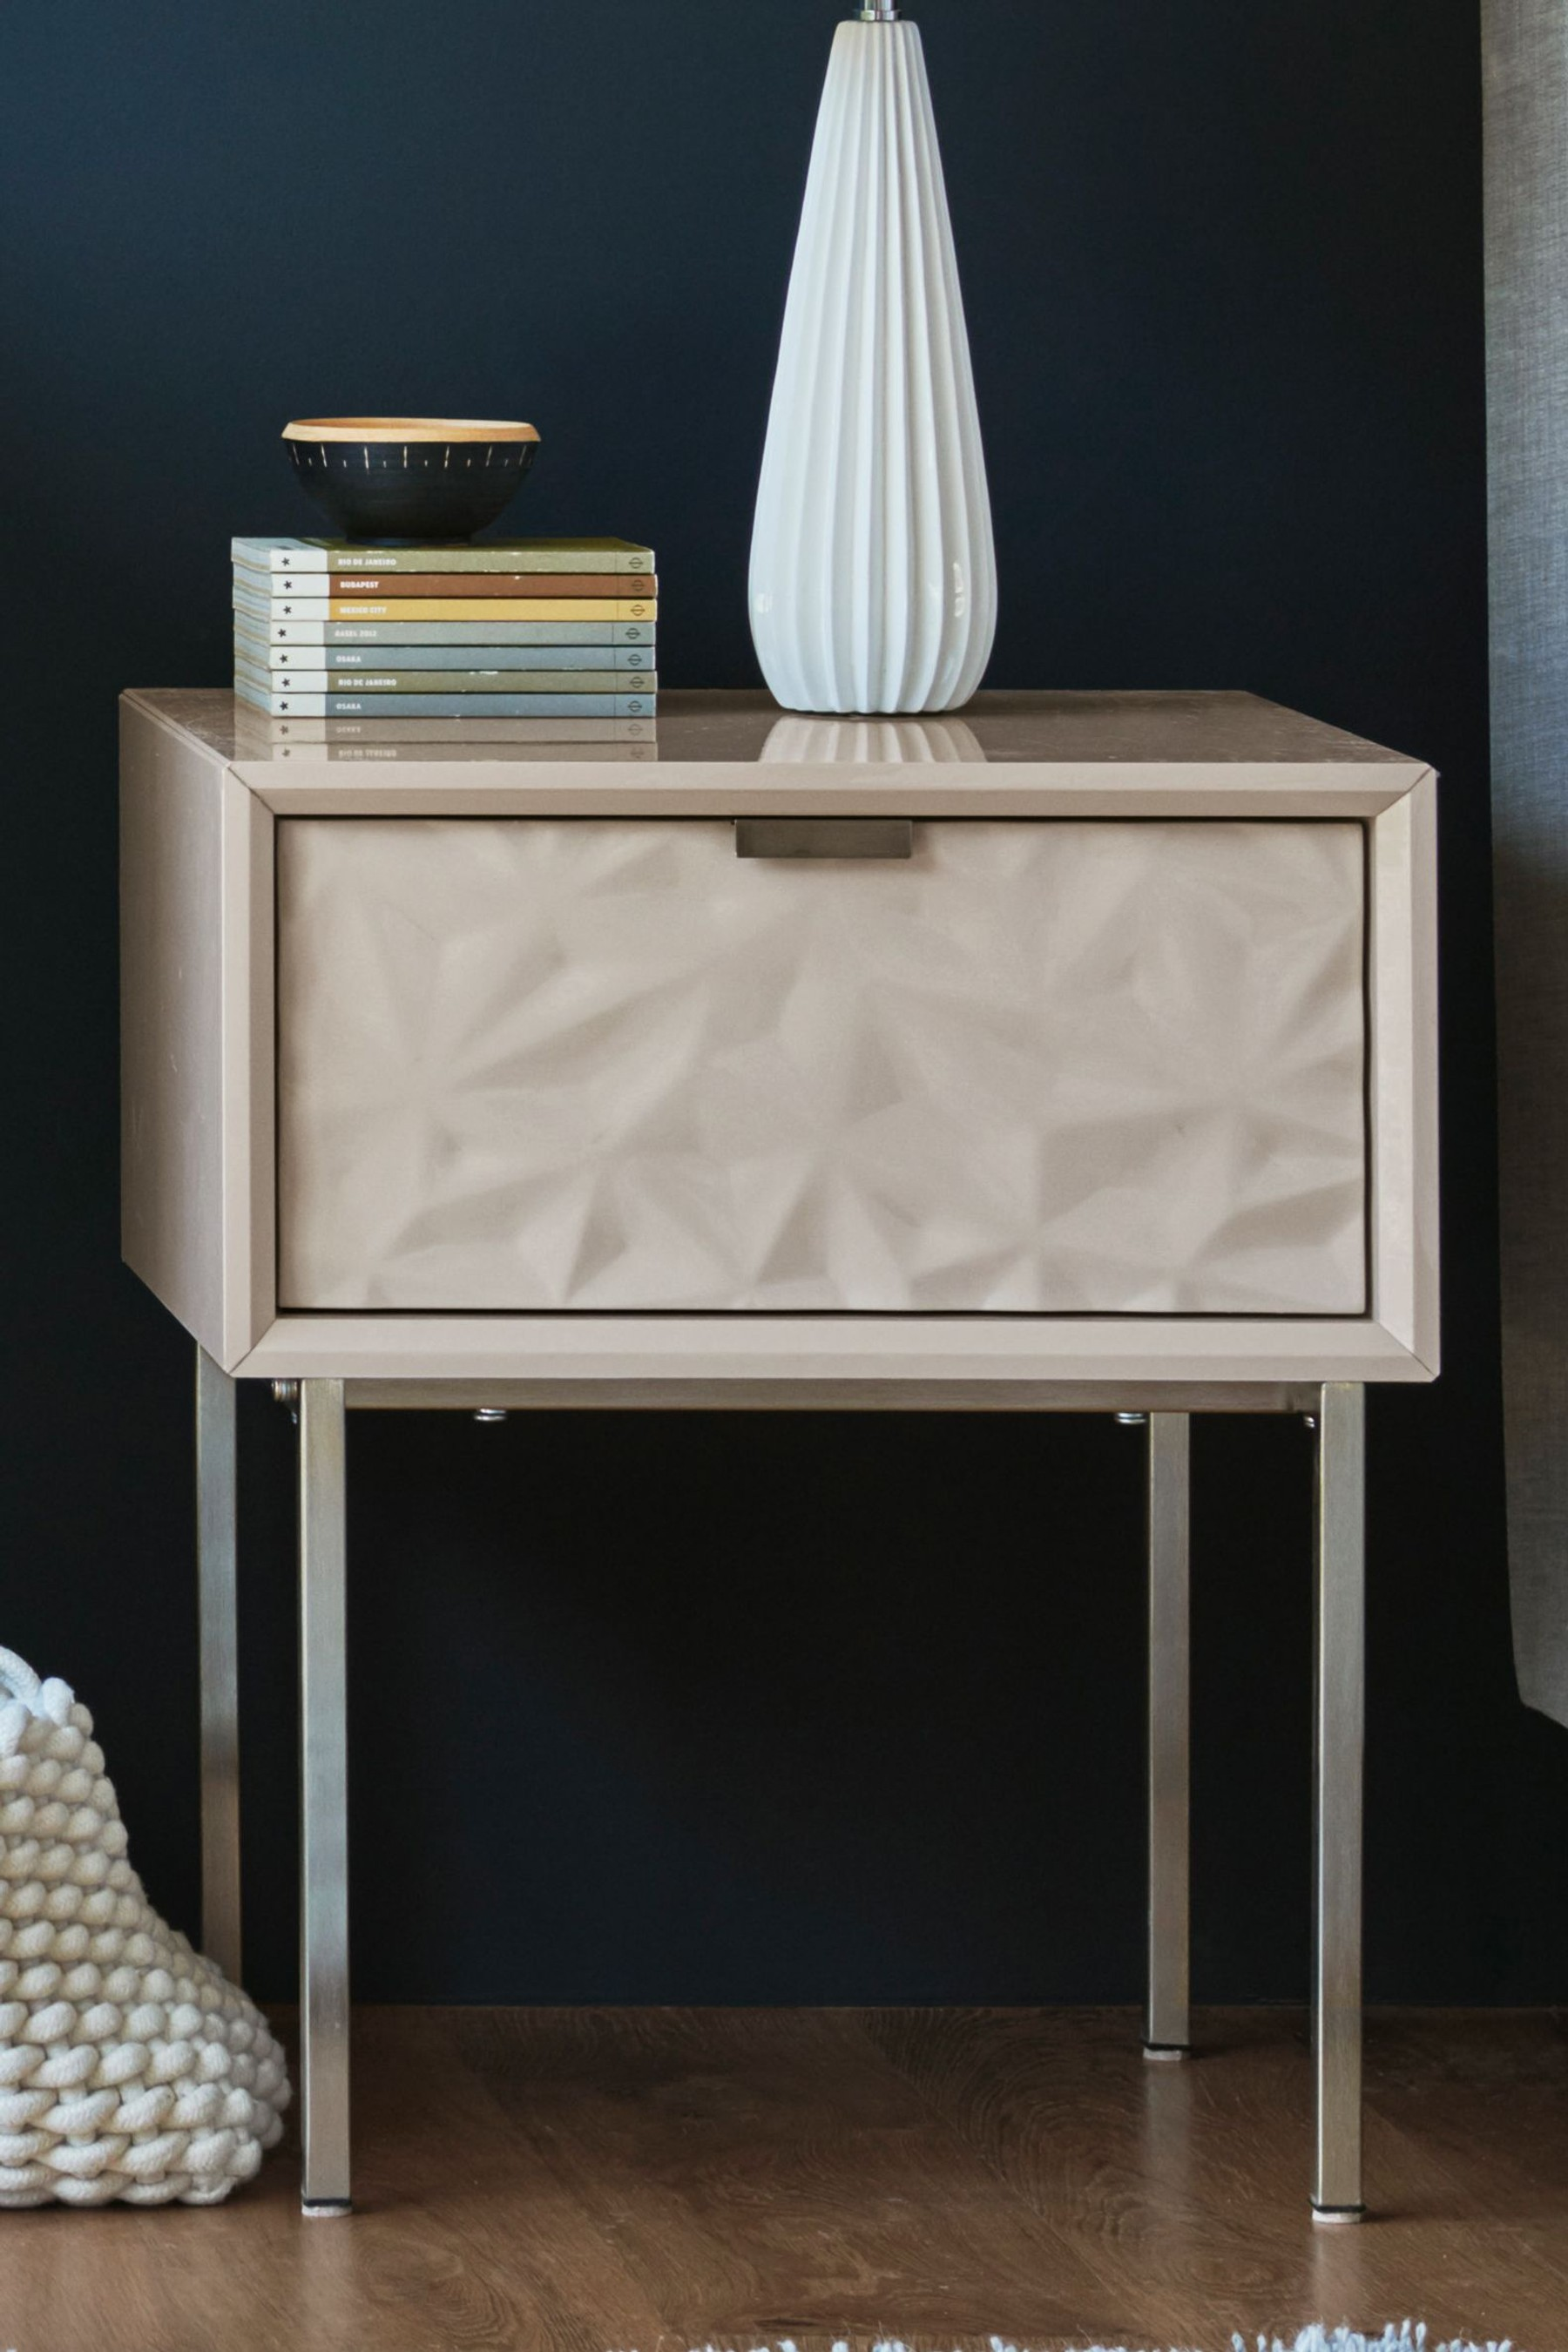 Apartment Hacks 7 Storage Stretching Tips For Small Bedrooms Small Bedside Table Small Space Storage Bedroom Side Tables Bedroom